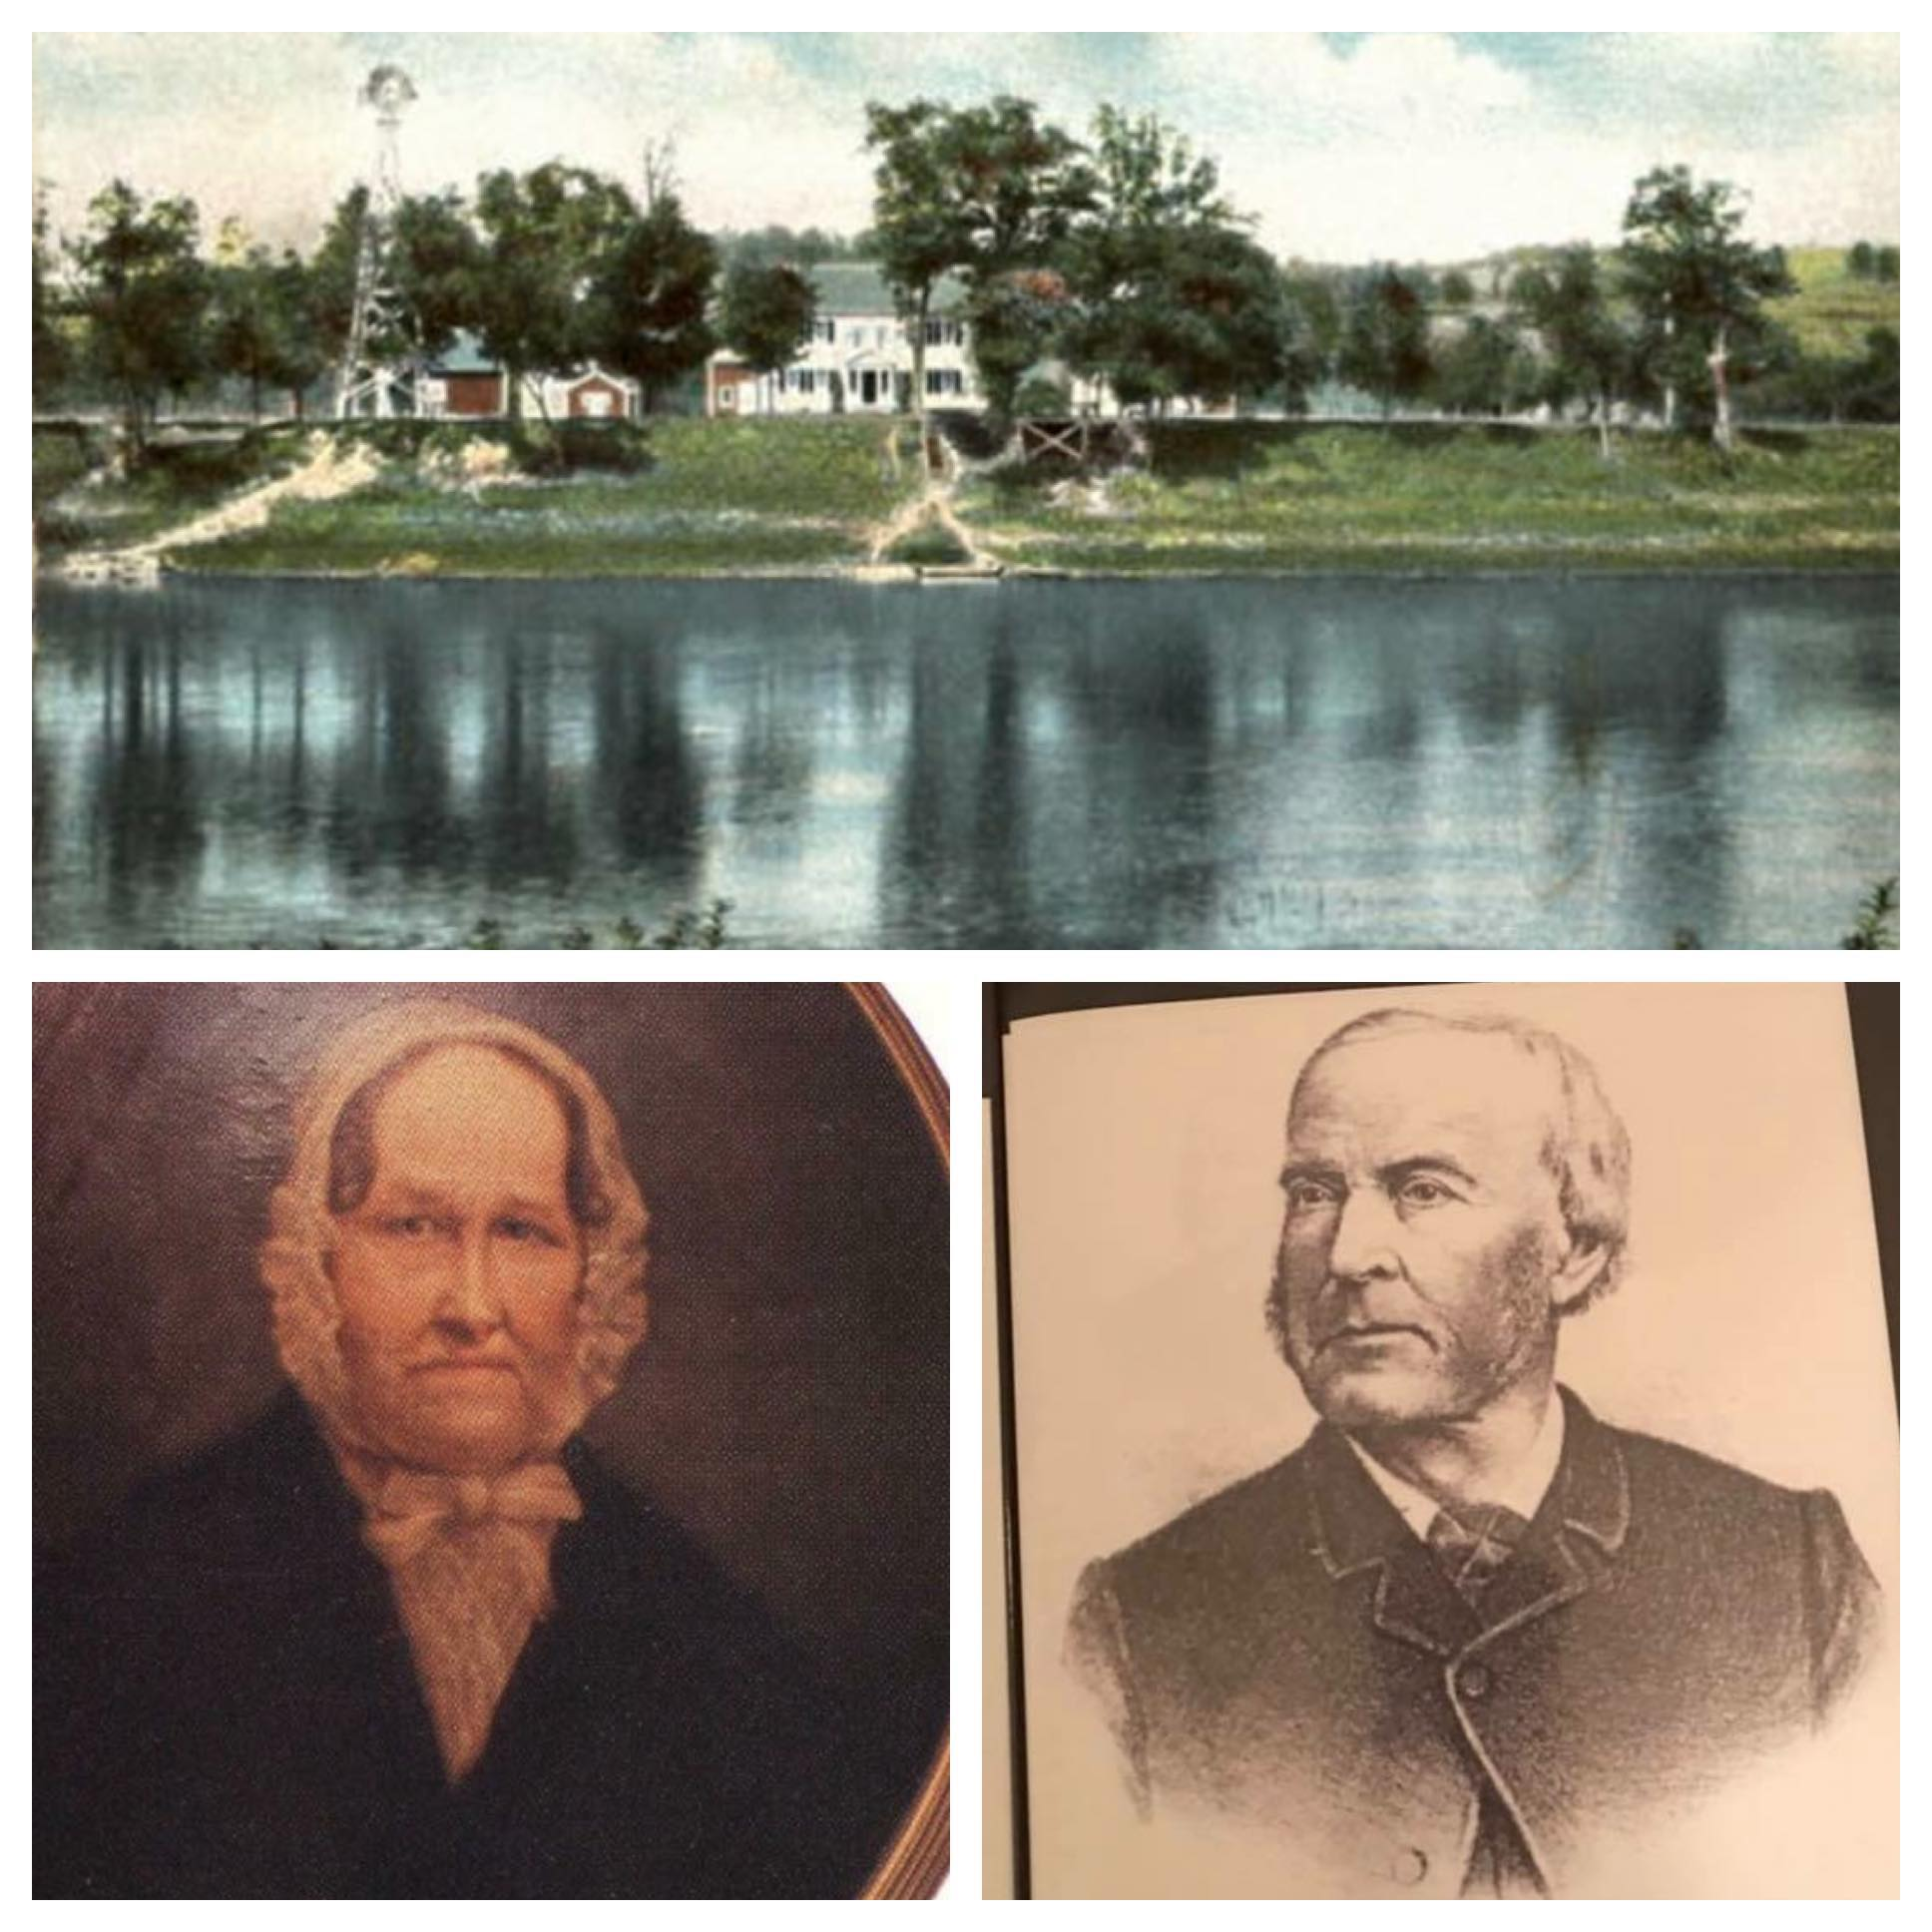 (Top) postcard picturing Washingtonian Hall. (Bottom) The original owners of the Washingtonian Hall!, Anne and Amos Patterson.